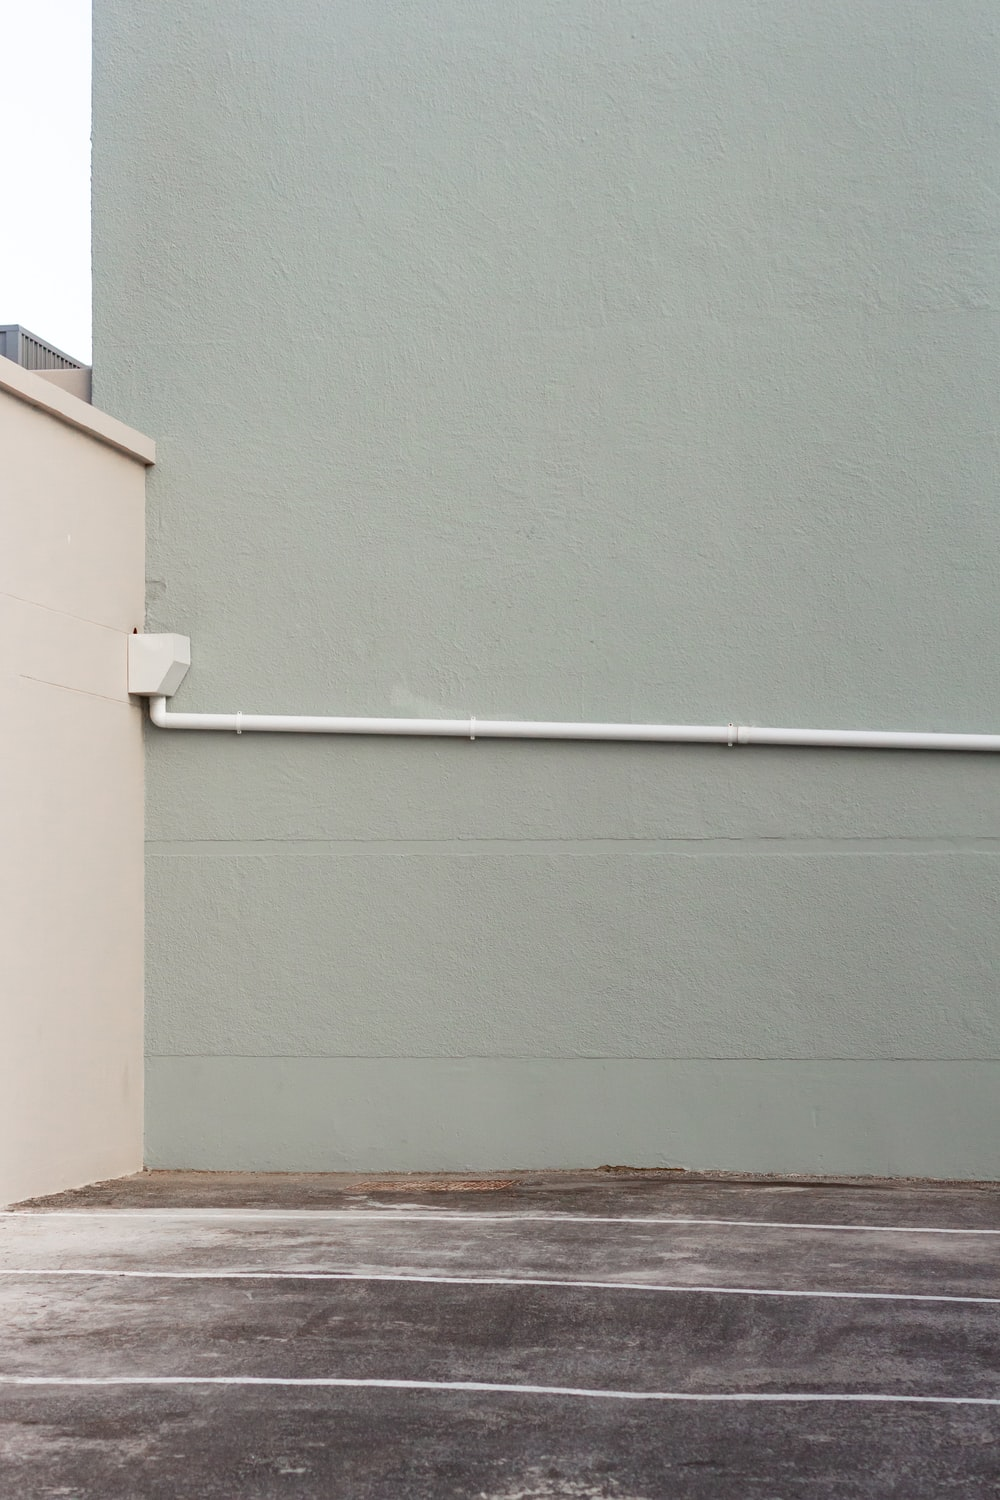 white pipe mounted on green wall